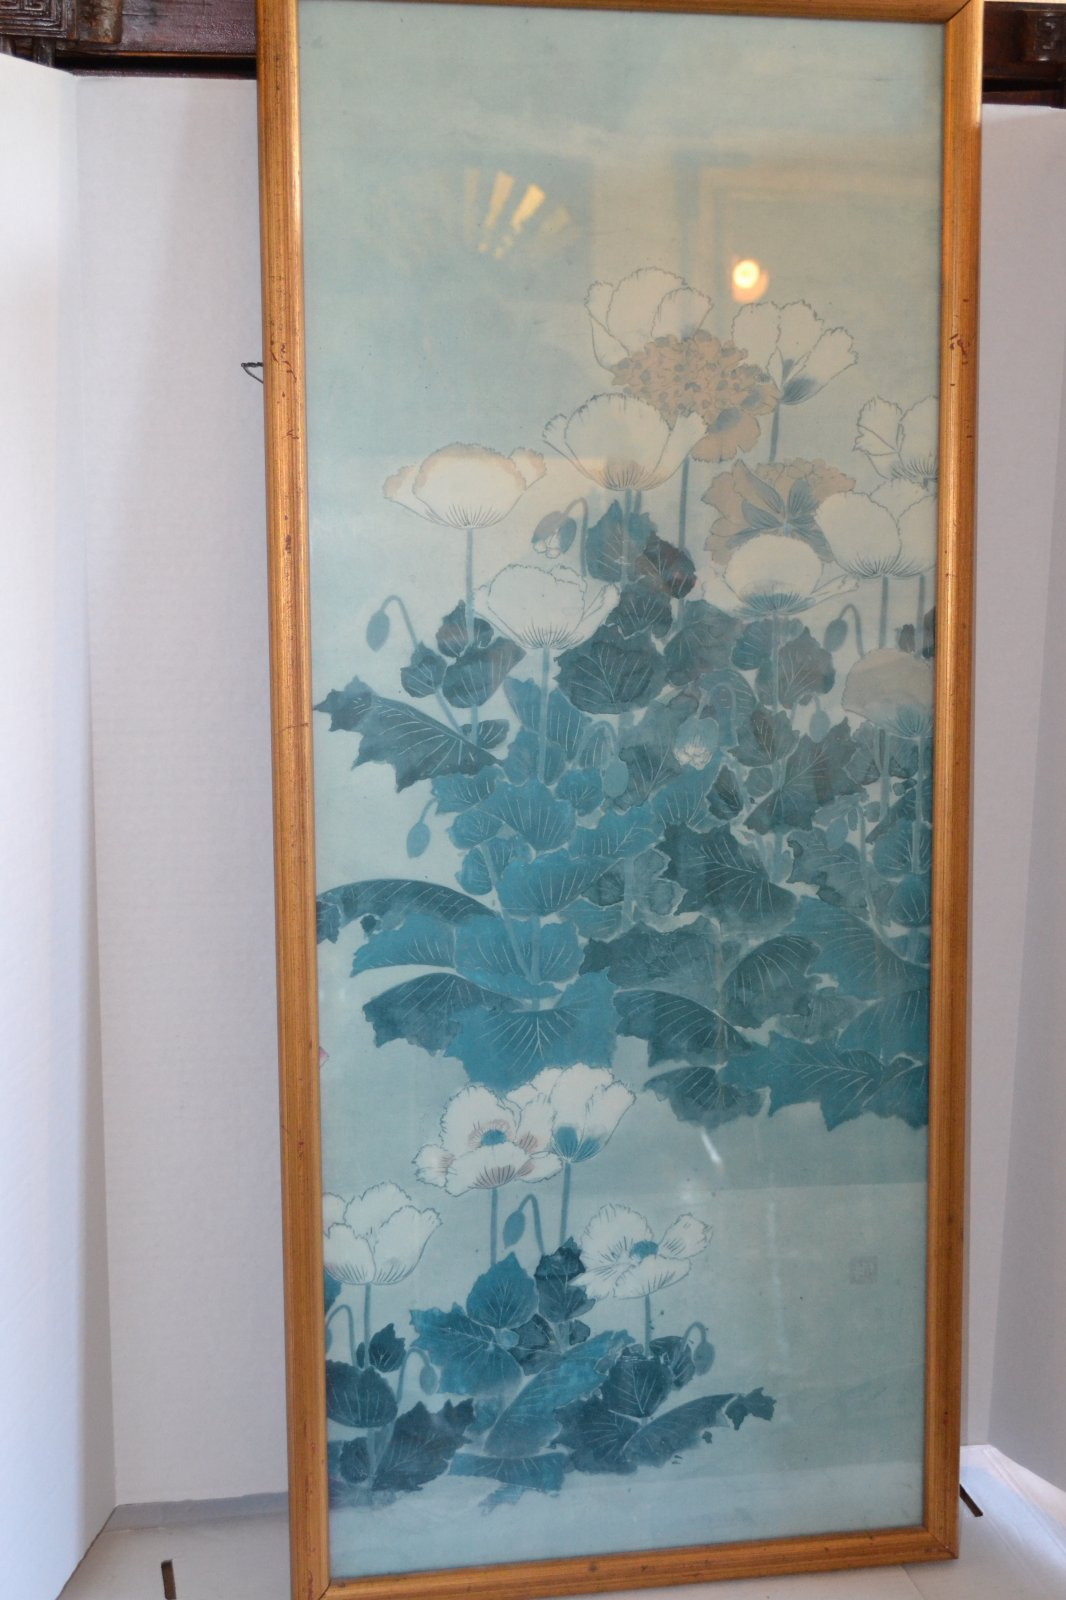 20th Century Blue floral, Framed & Glazed Print on blue background, Gold Painted frame H. 40 X W. 17